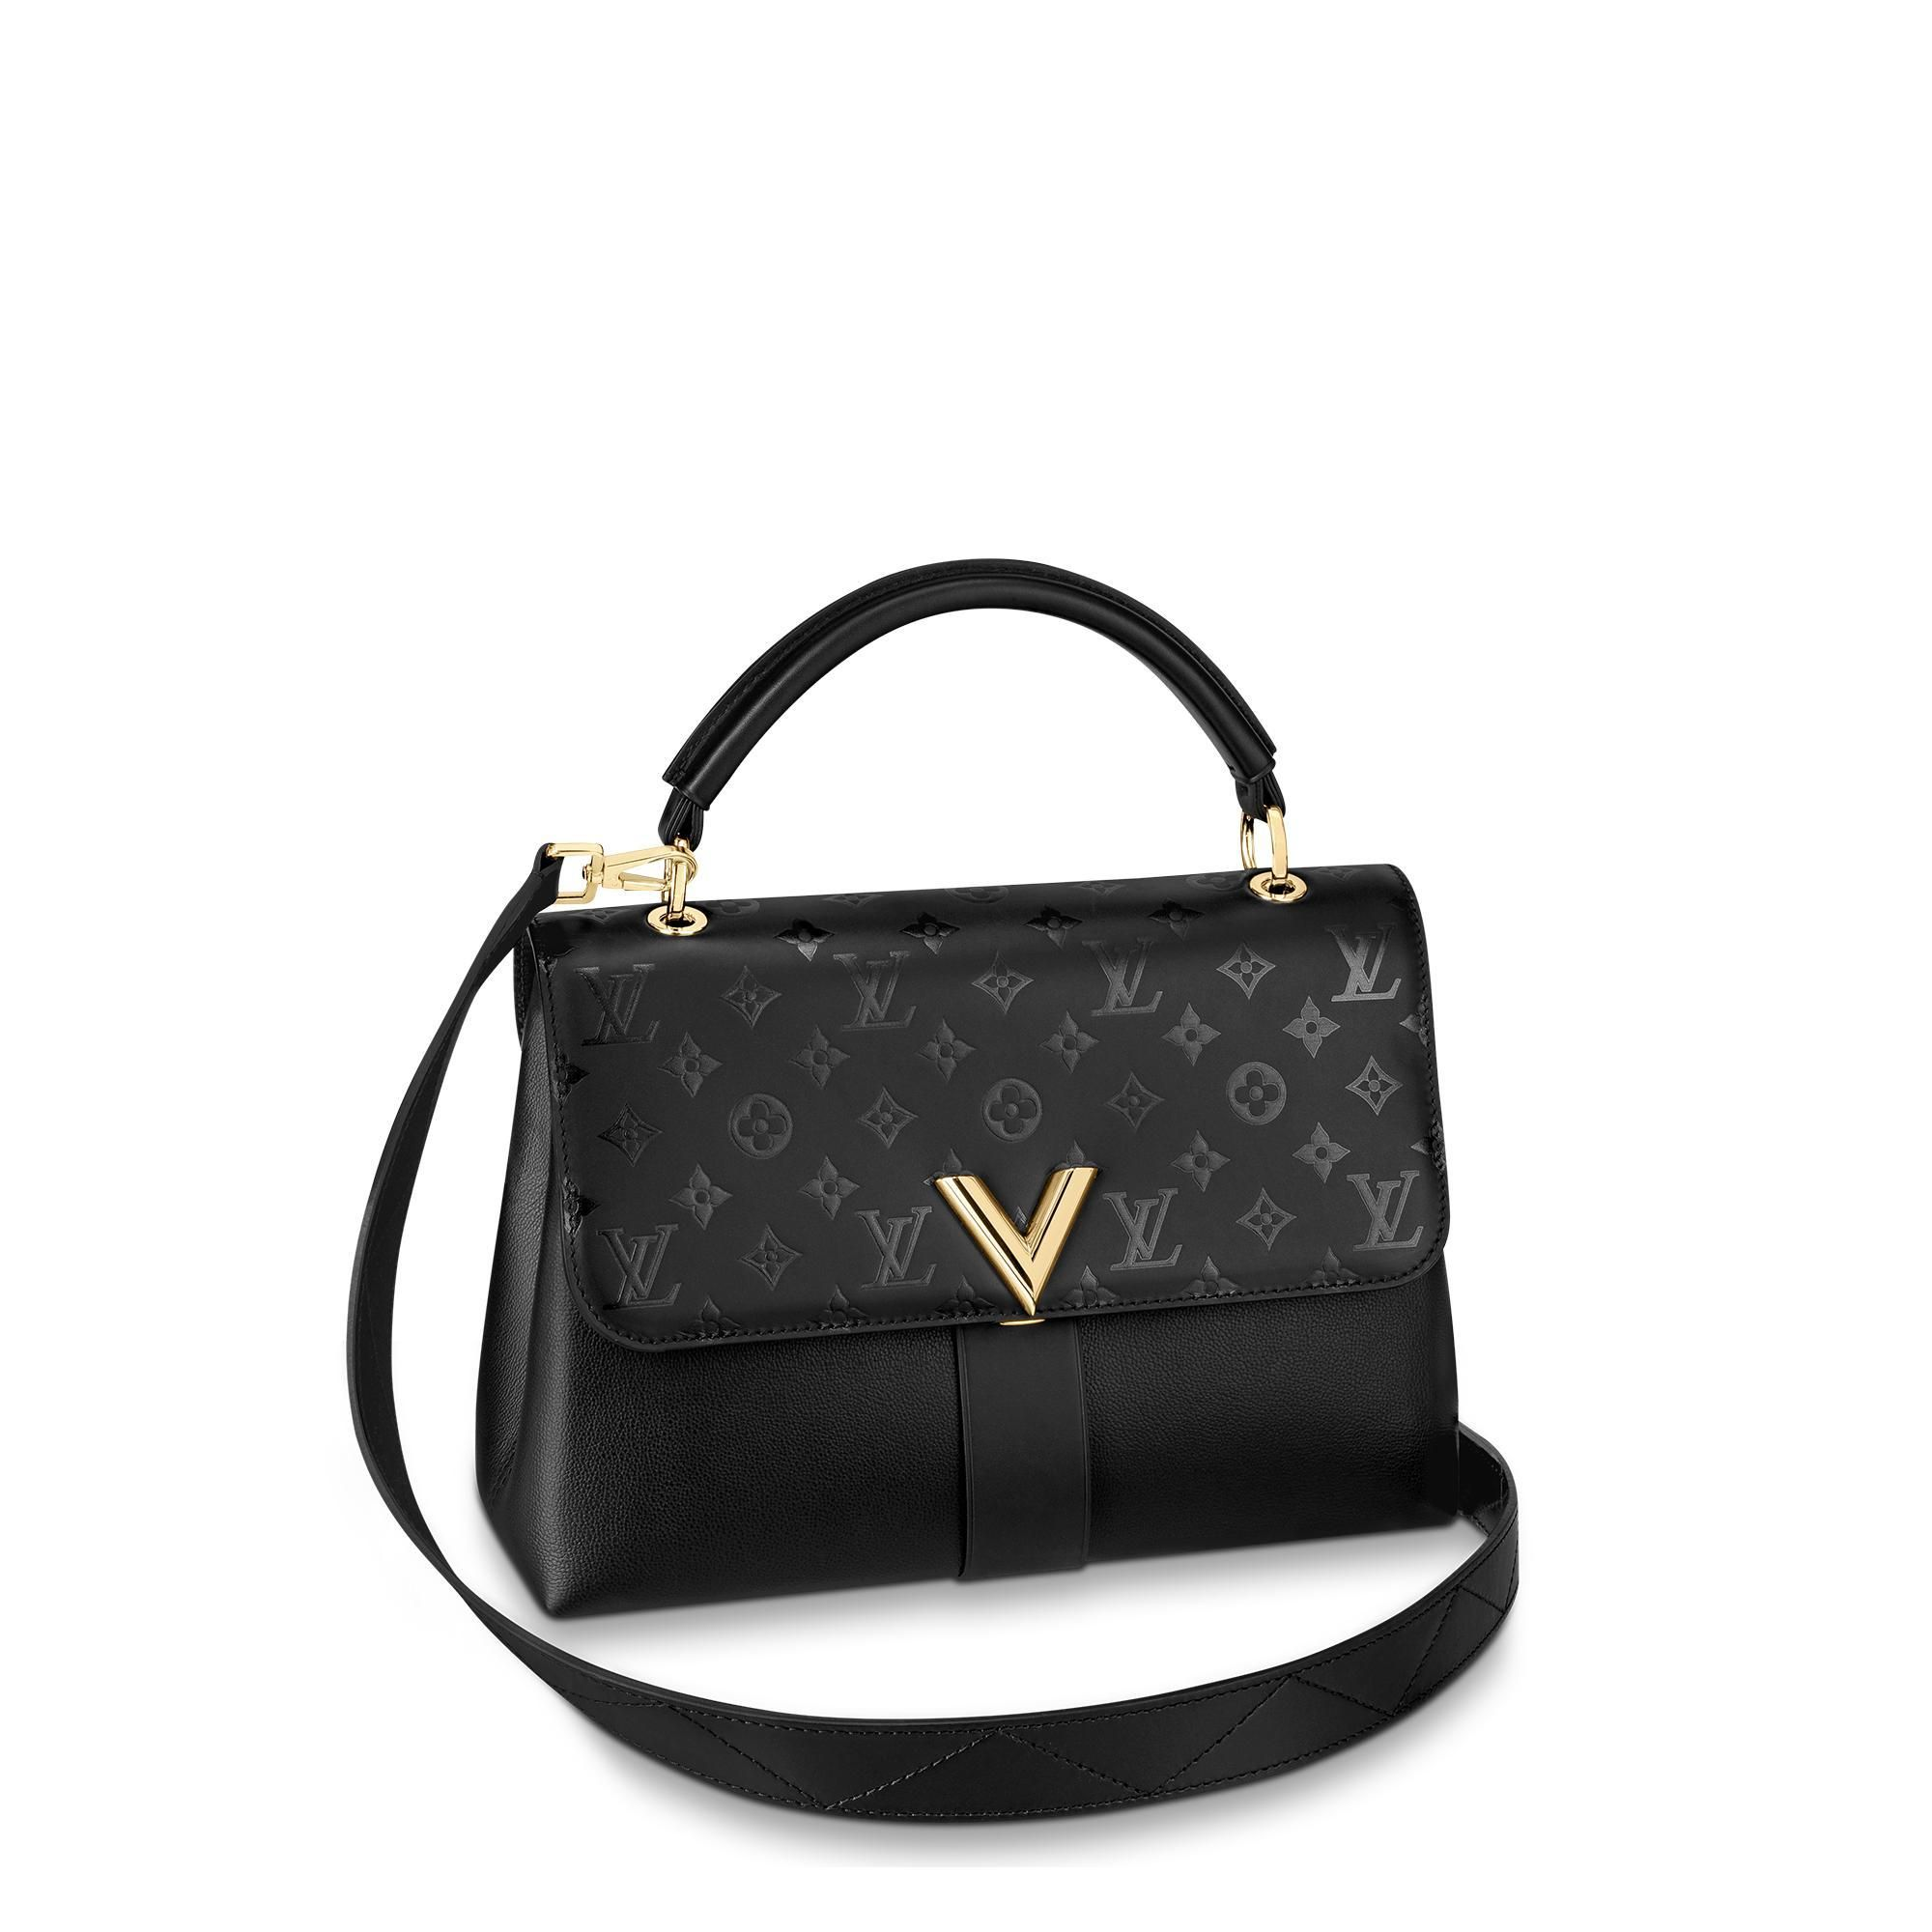 Louis Vuitton Very One Handle Louisvuitton Bags Shoulder Hand Leather